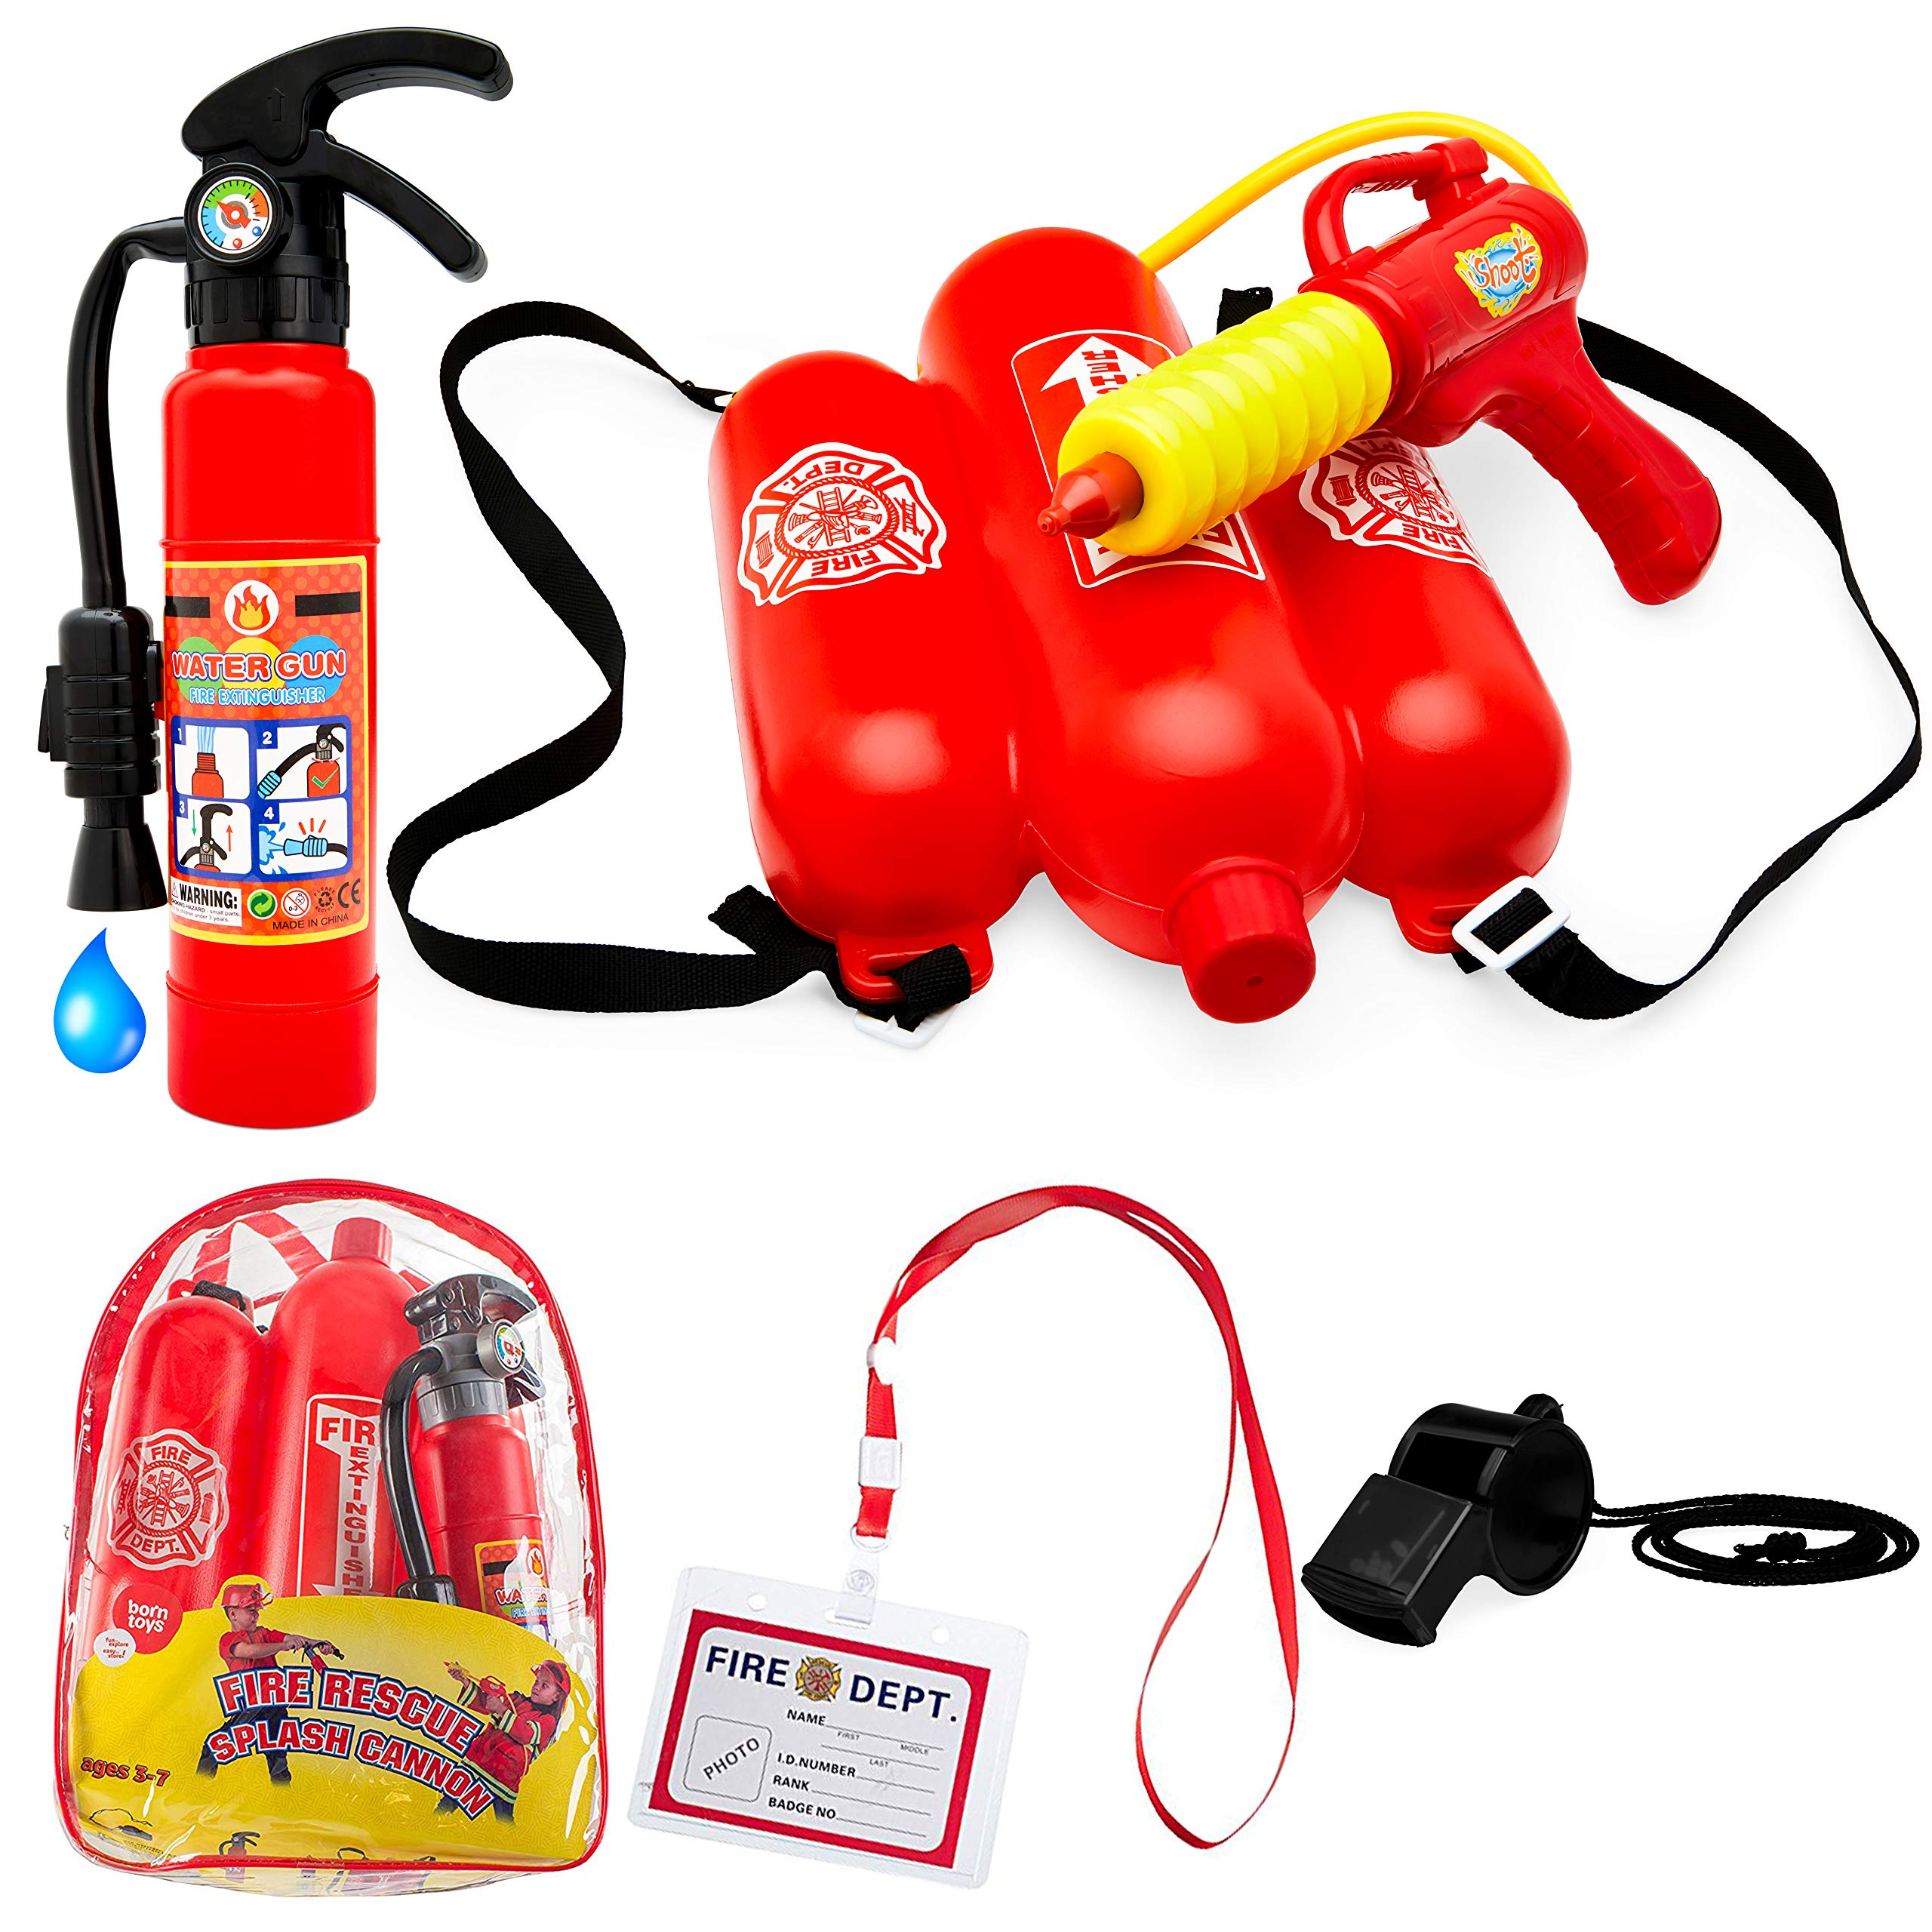 Born Toys 5 Piece Premium Firefighter Water Gun Toy Set and fire Toy Extinguisher. for Fireman Costume, Outdoors, Pools, Summer,Beach,Bath and Halloween.Includes Bag by Born Toys